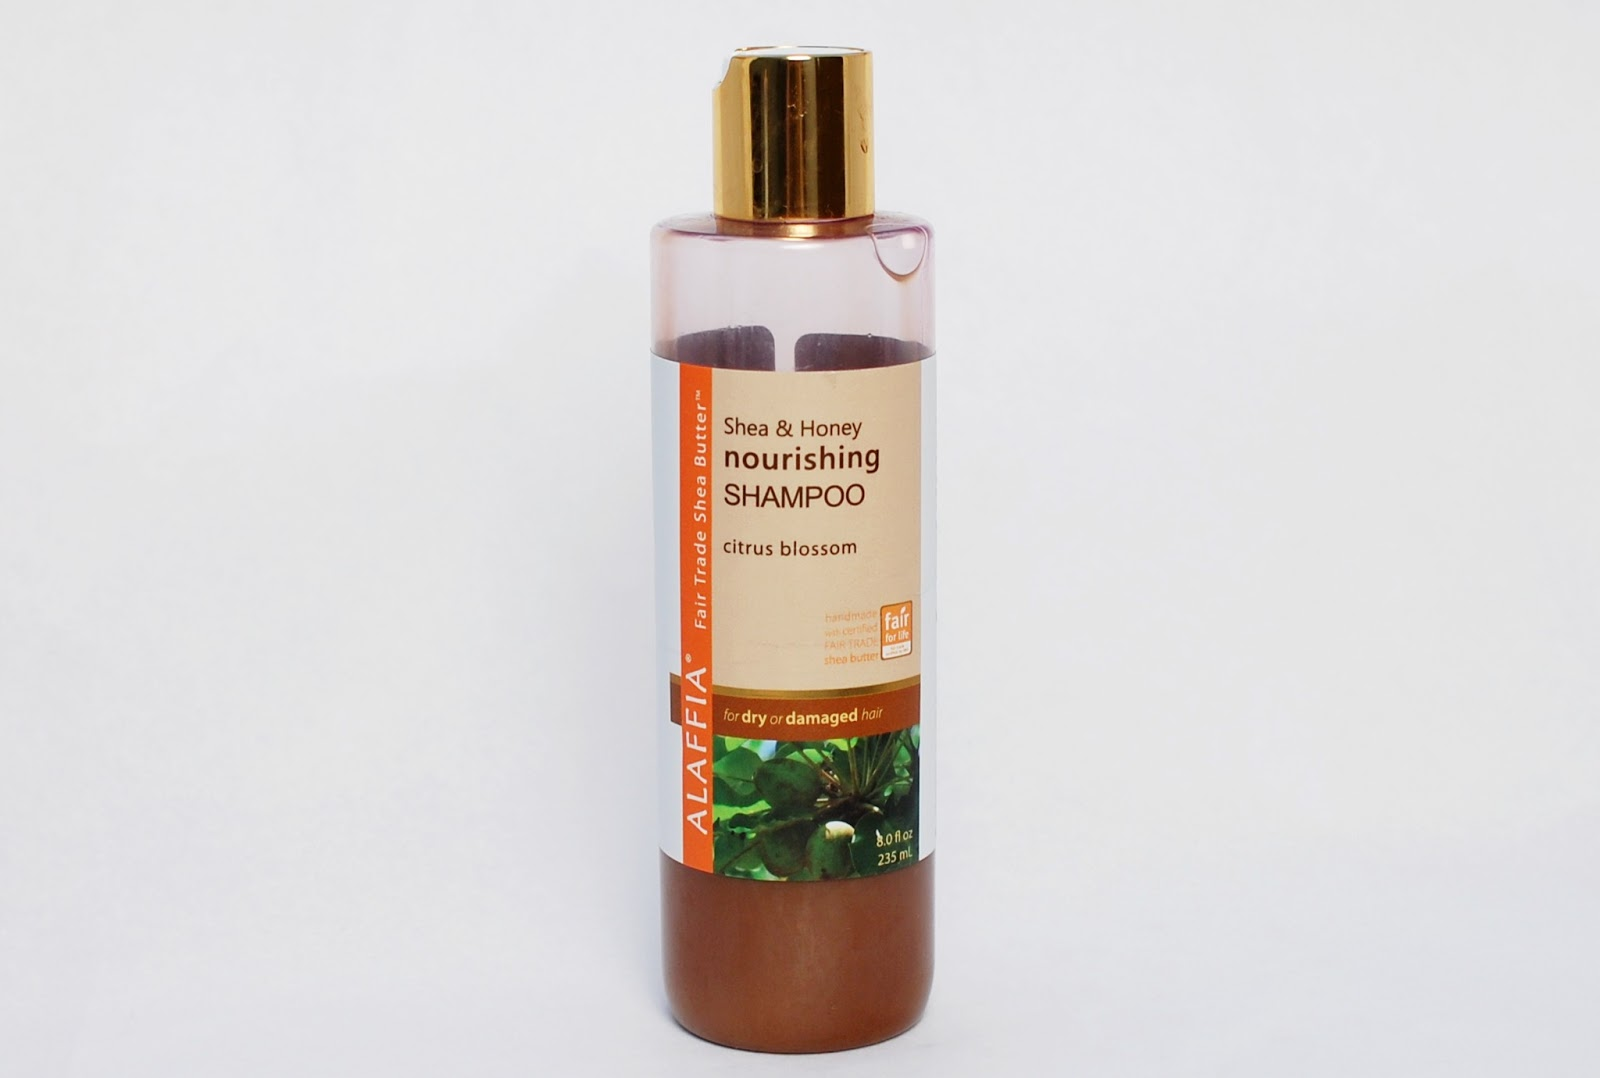 Alaffia Shea&Honey Nourishing Shampoo